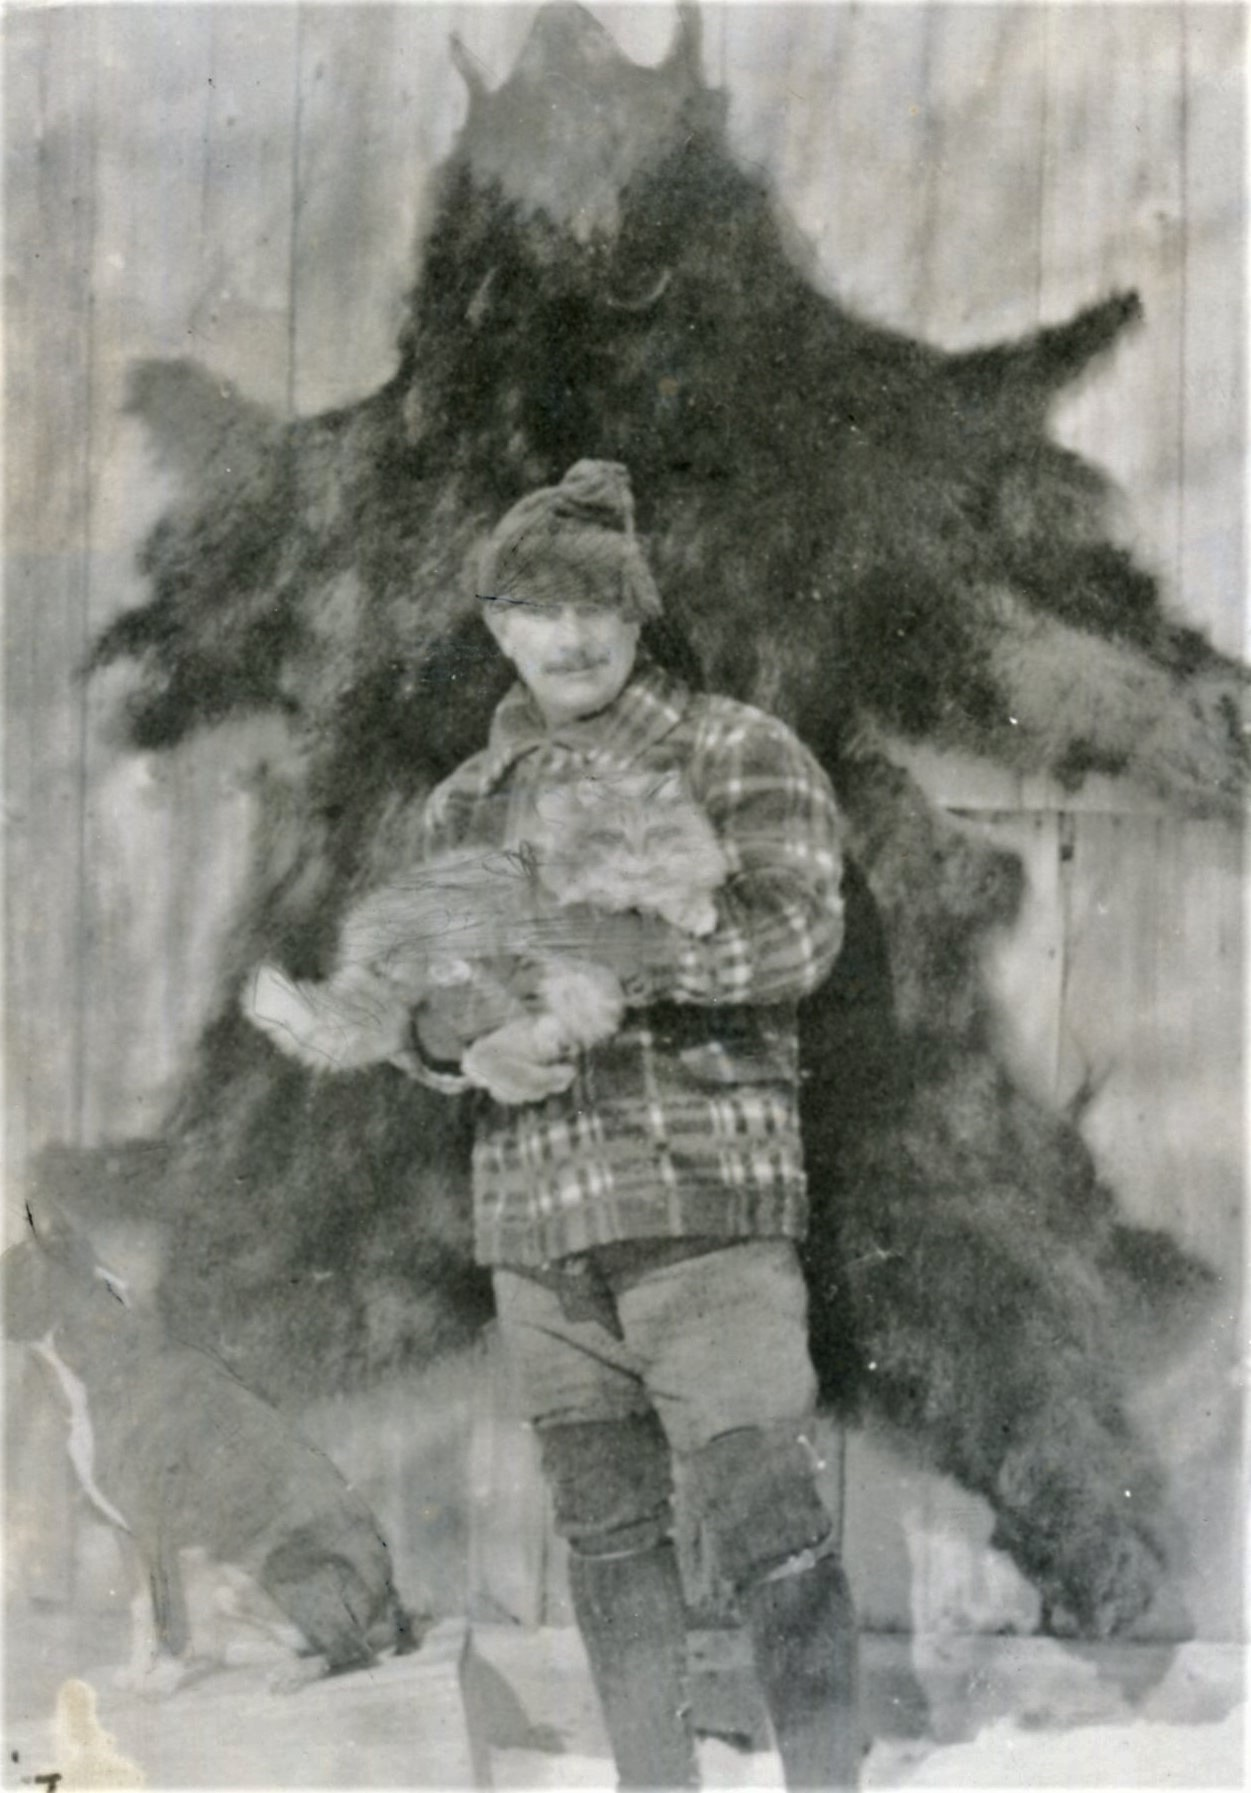 JIM WHYTE AND FRIEND AT HIS CABIN, CA. WINTER 1905